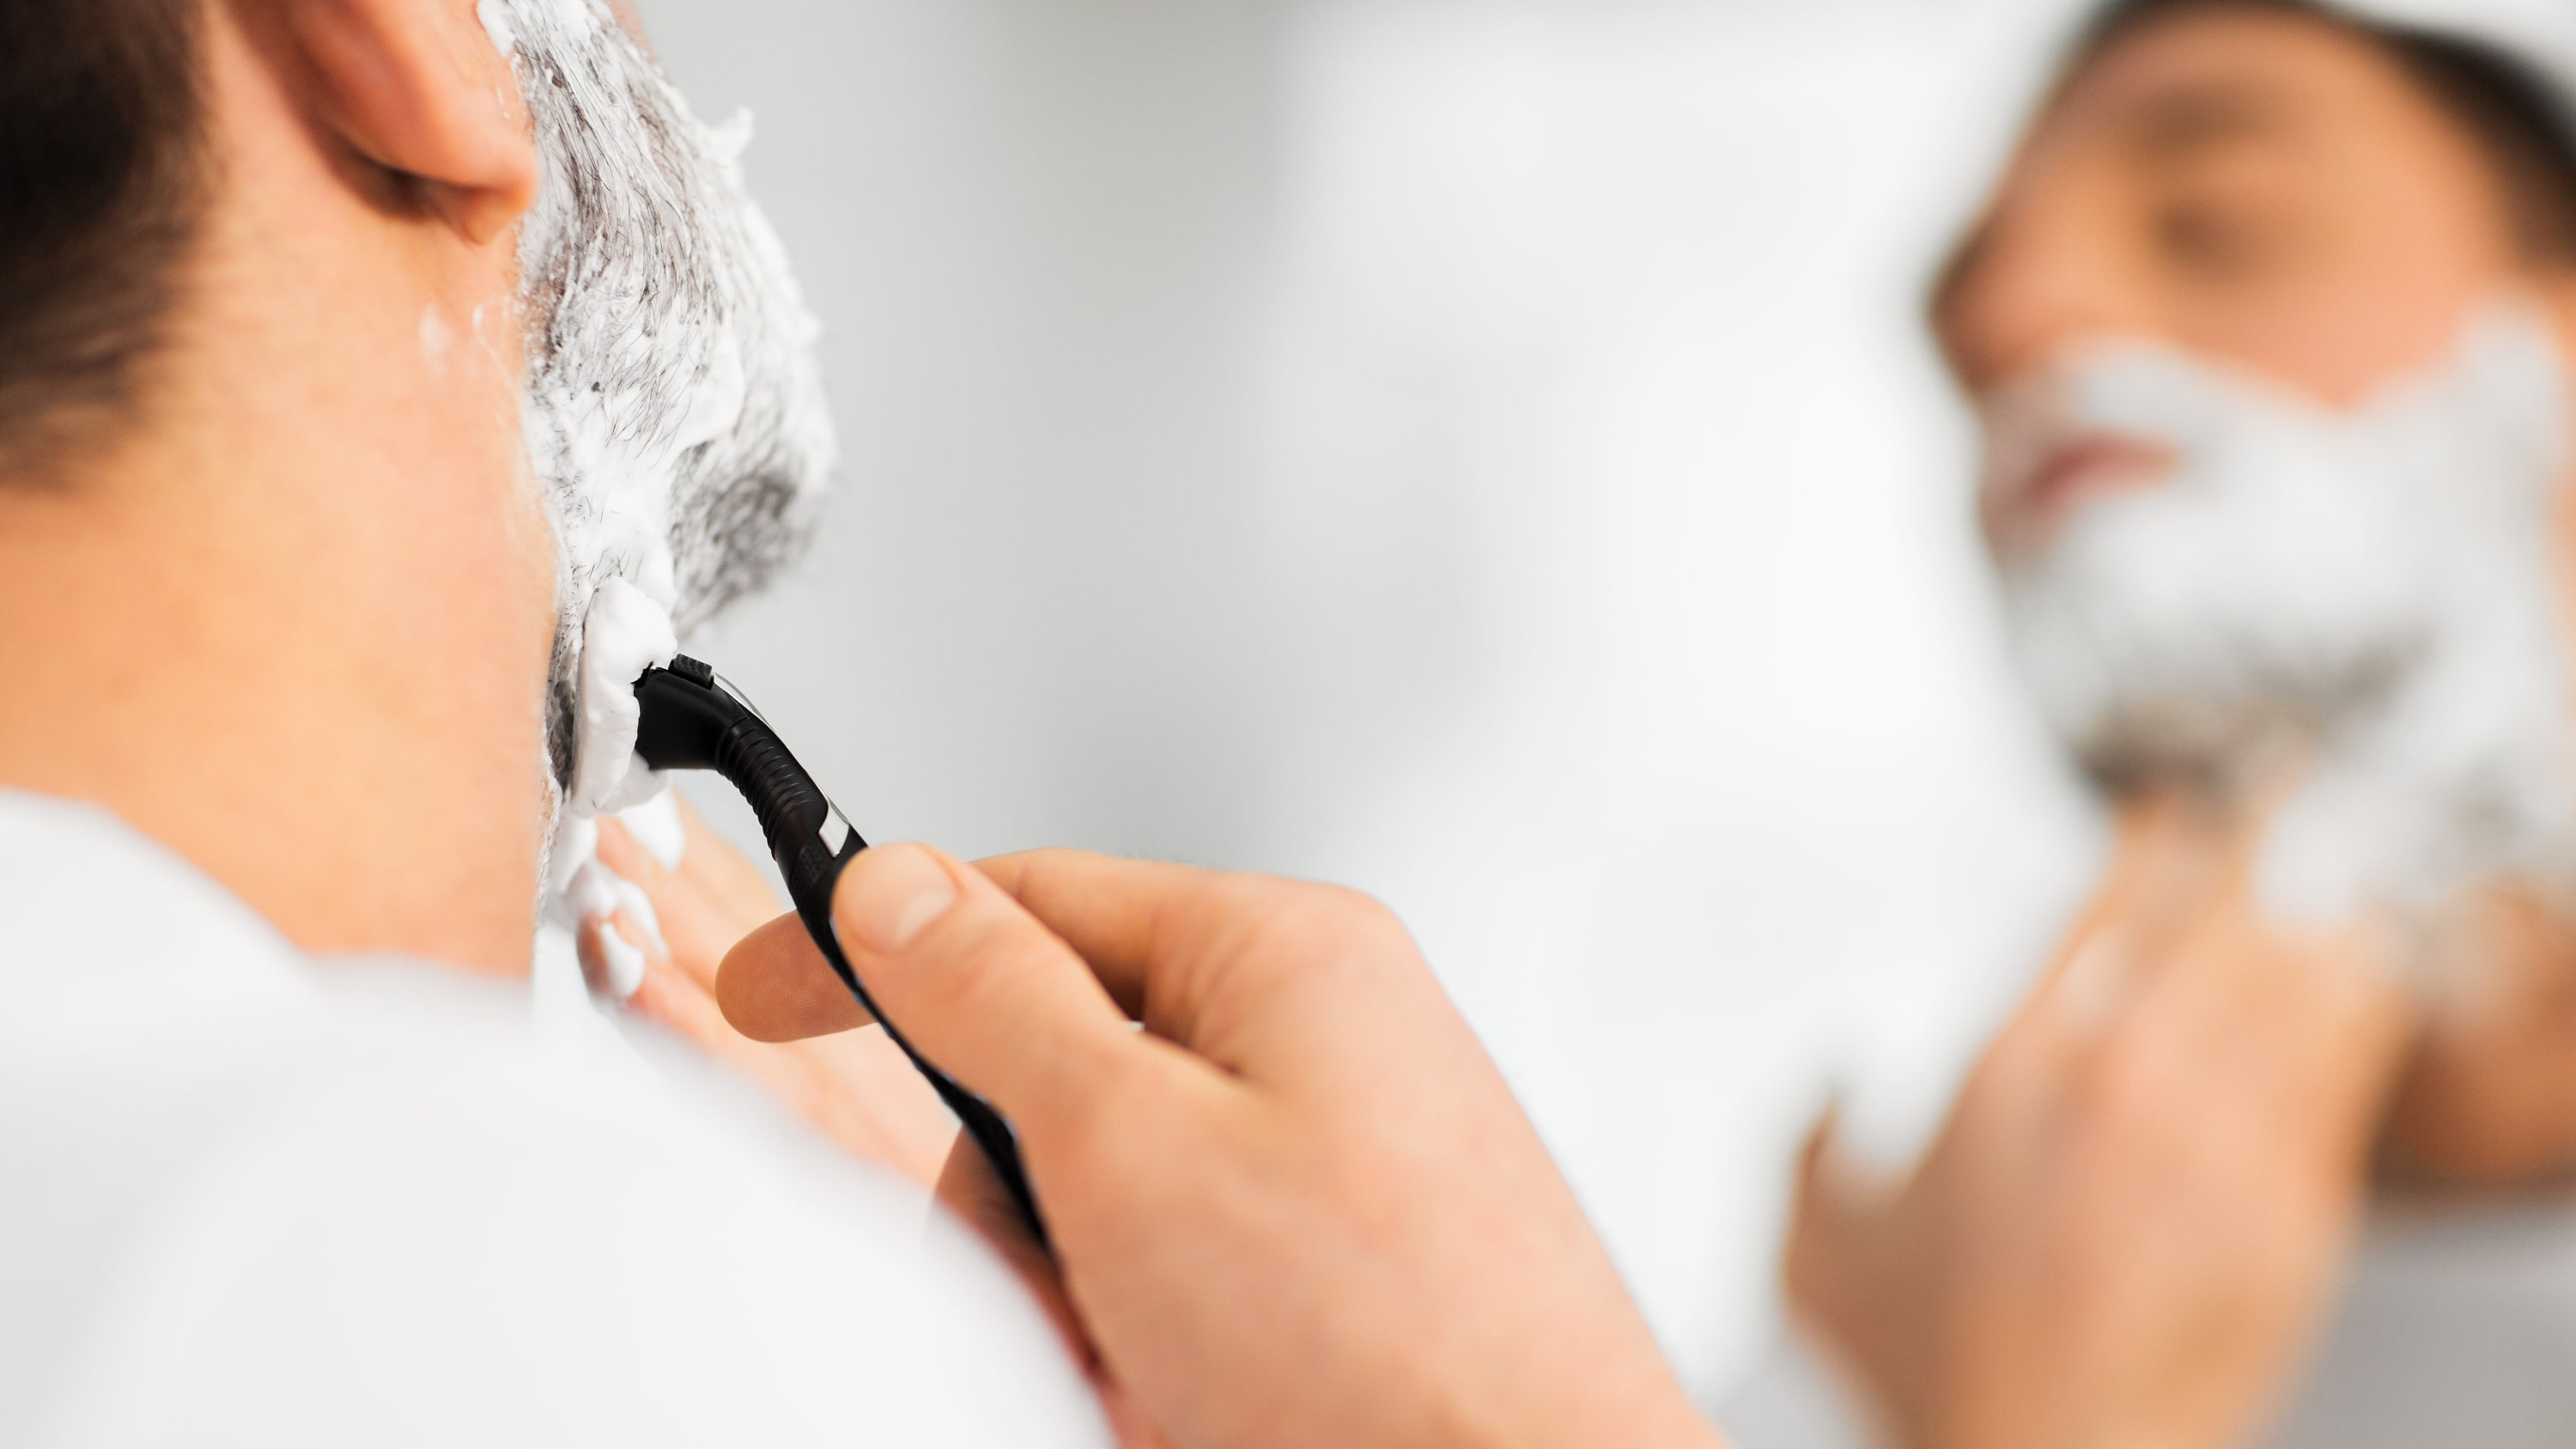 A man is shaving in a mirror. He is wearing a white t-shirt.